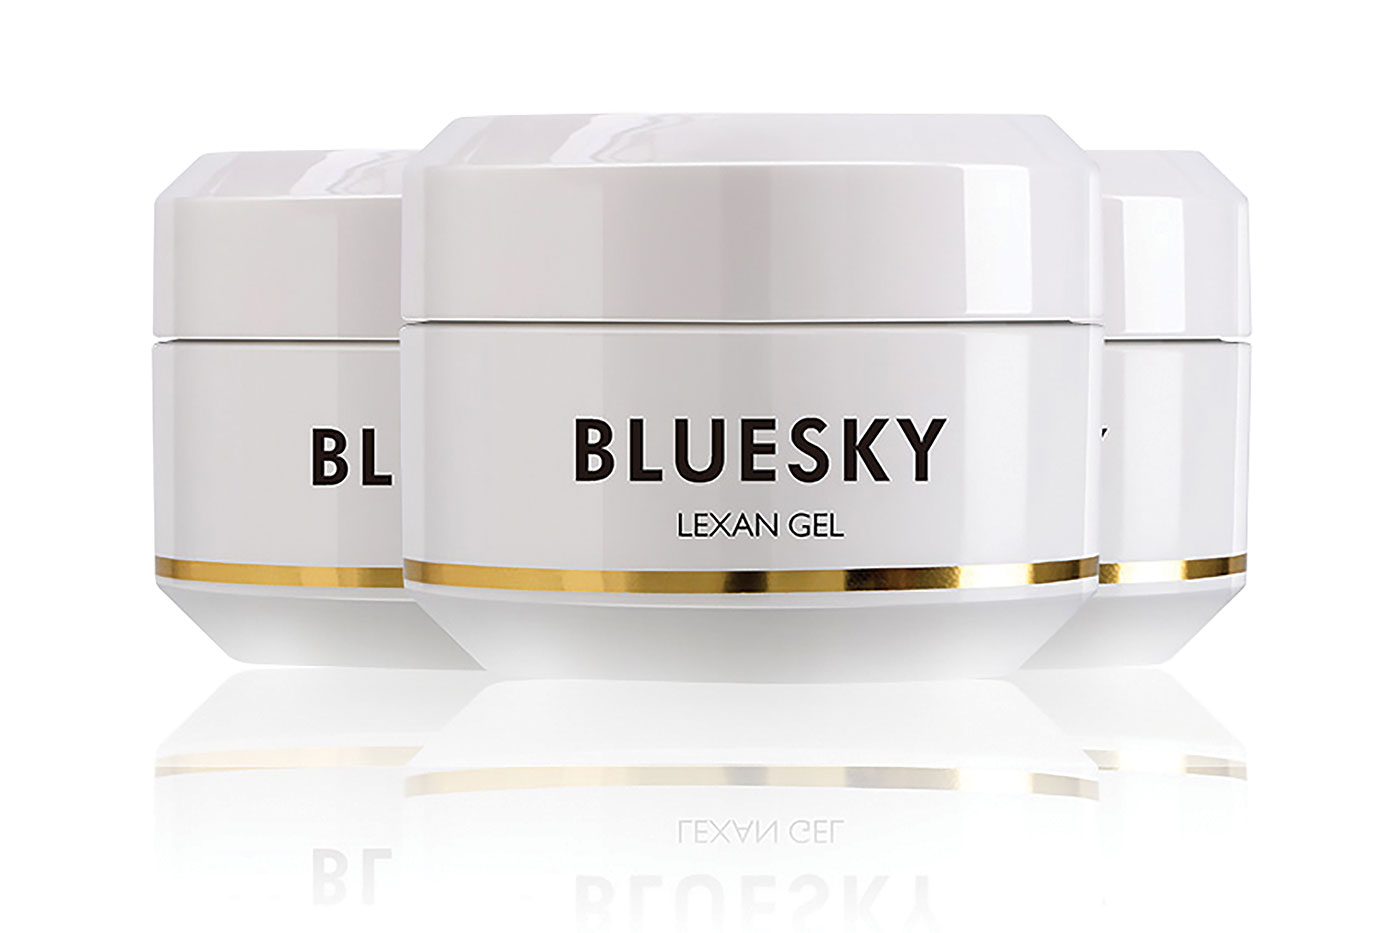 Bluesky Lexan Gel for effortless and swift nail services